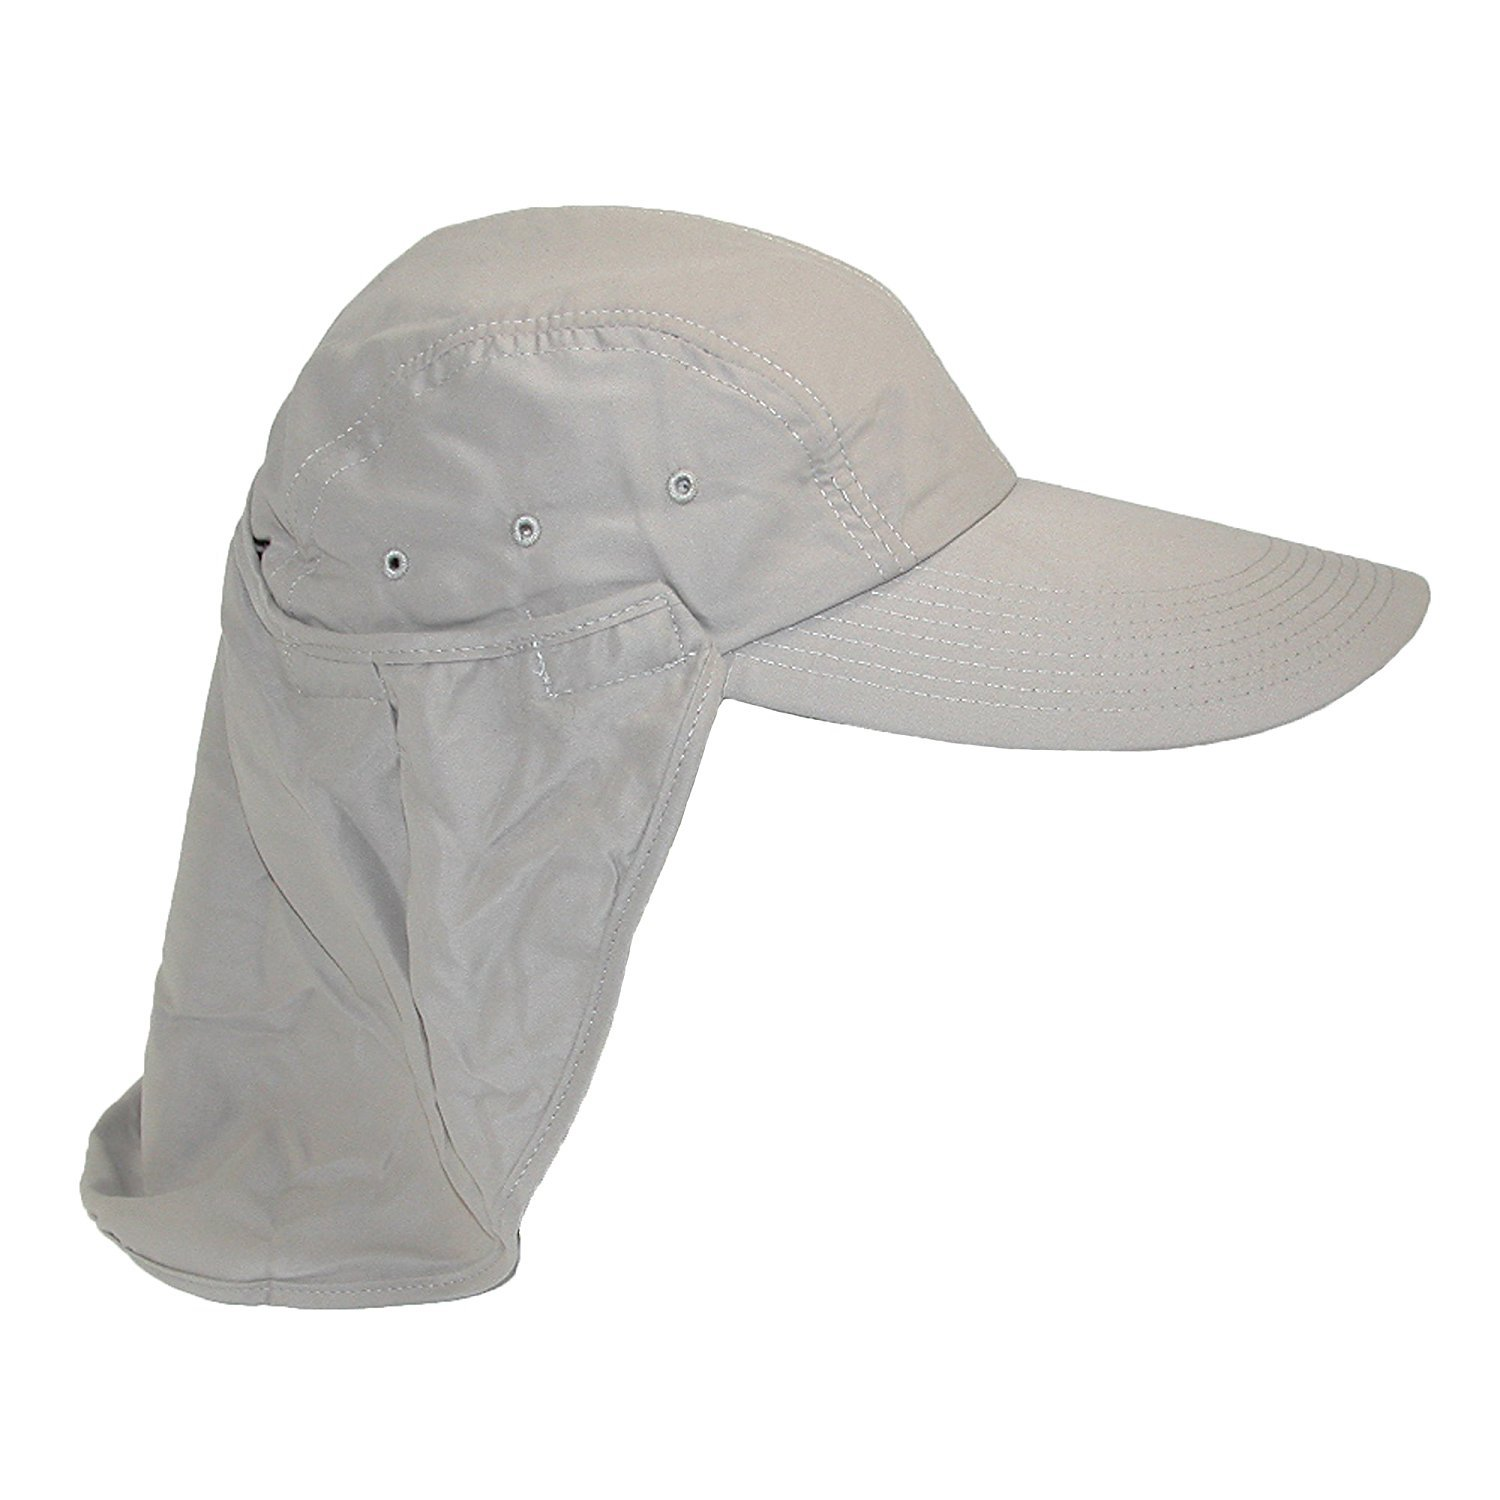 04cd81ebe60ec Amazon.com  Fishing Hat with Removable Neck Flap by Dorfman Pacific (One  Size